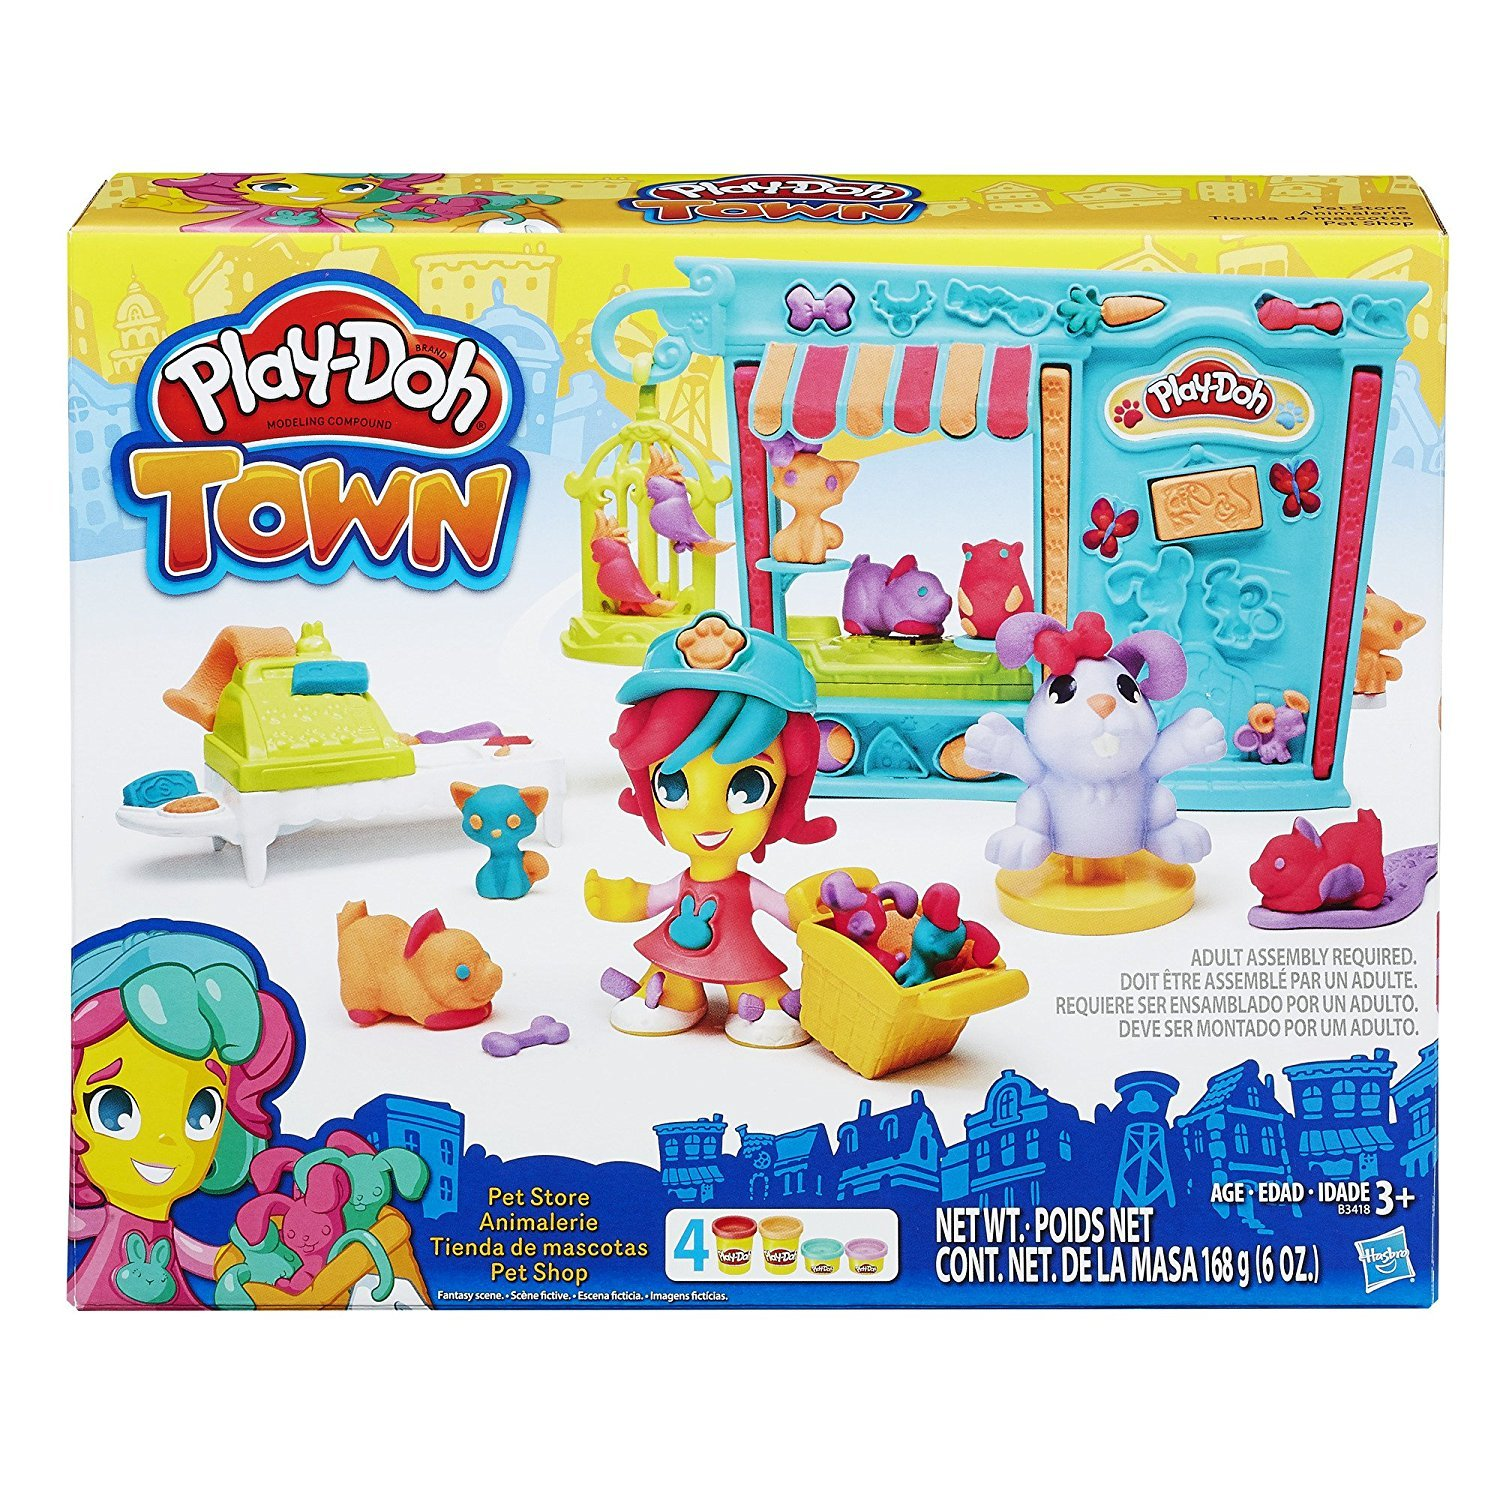 Play-Doh Town Pet Store.jpg